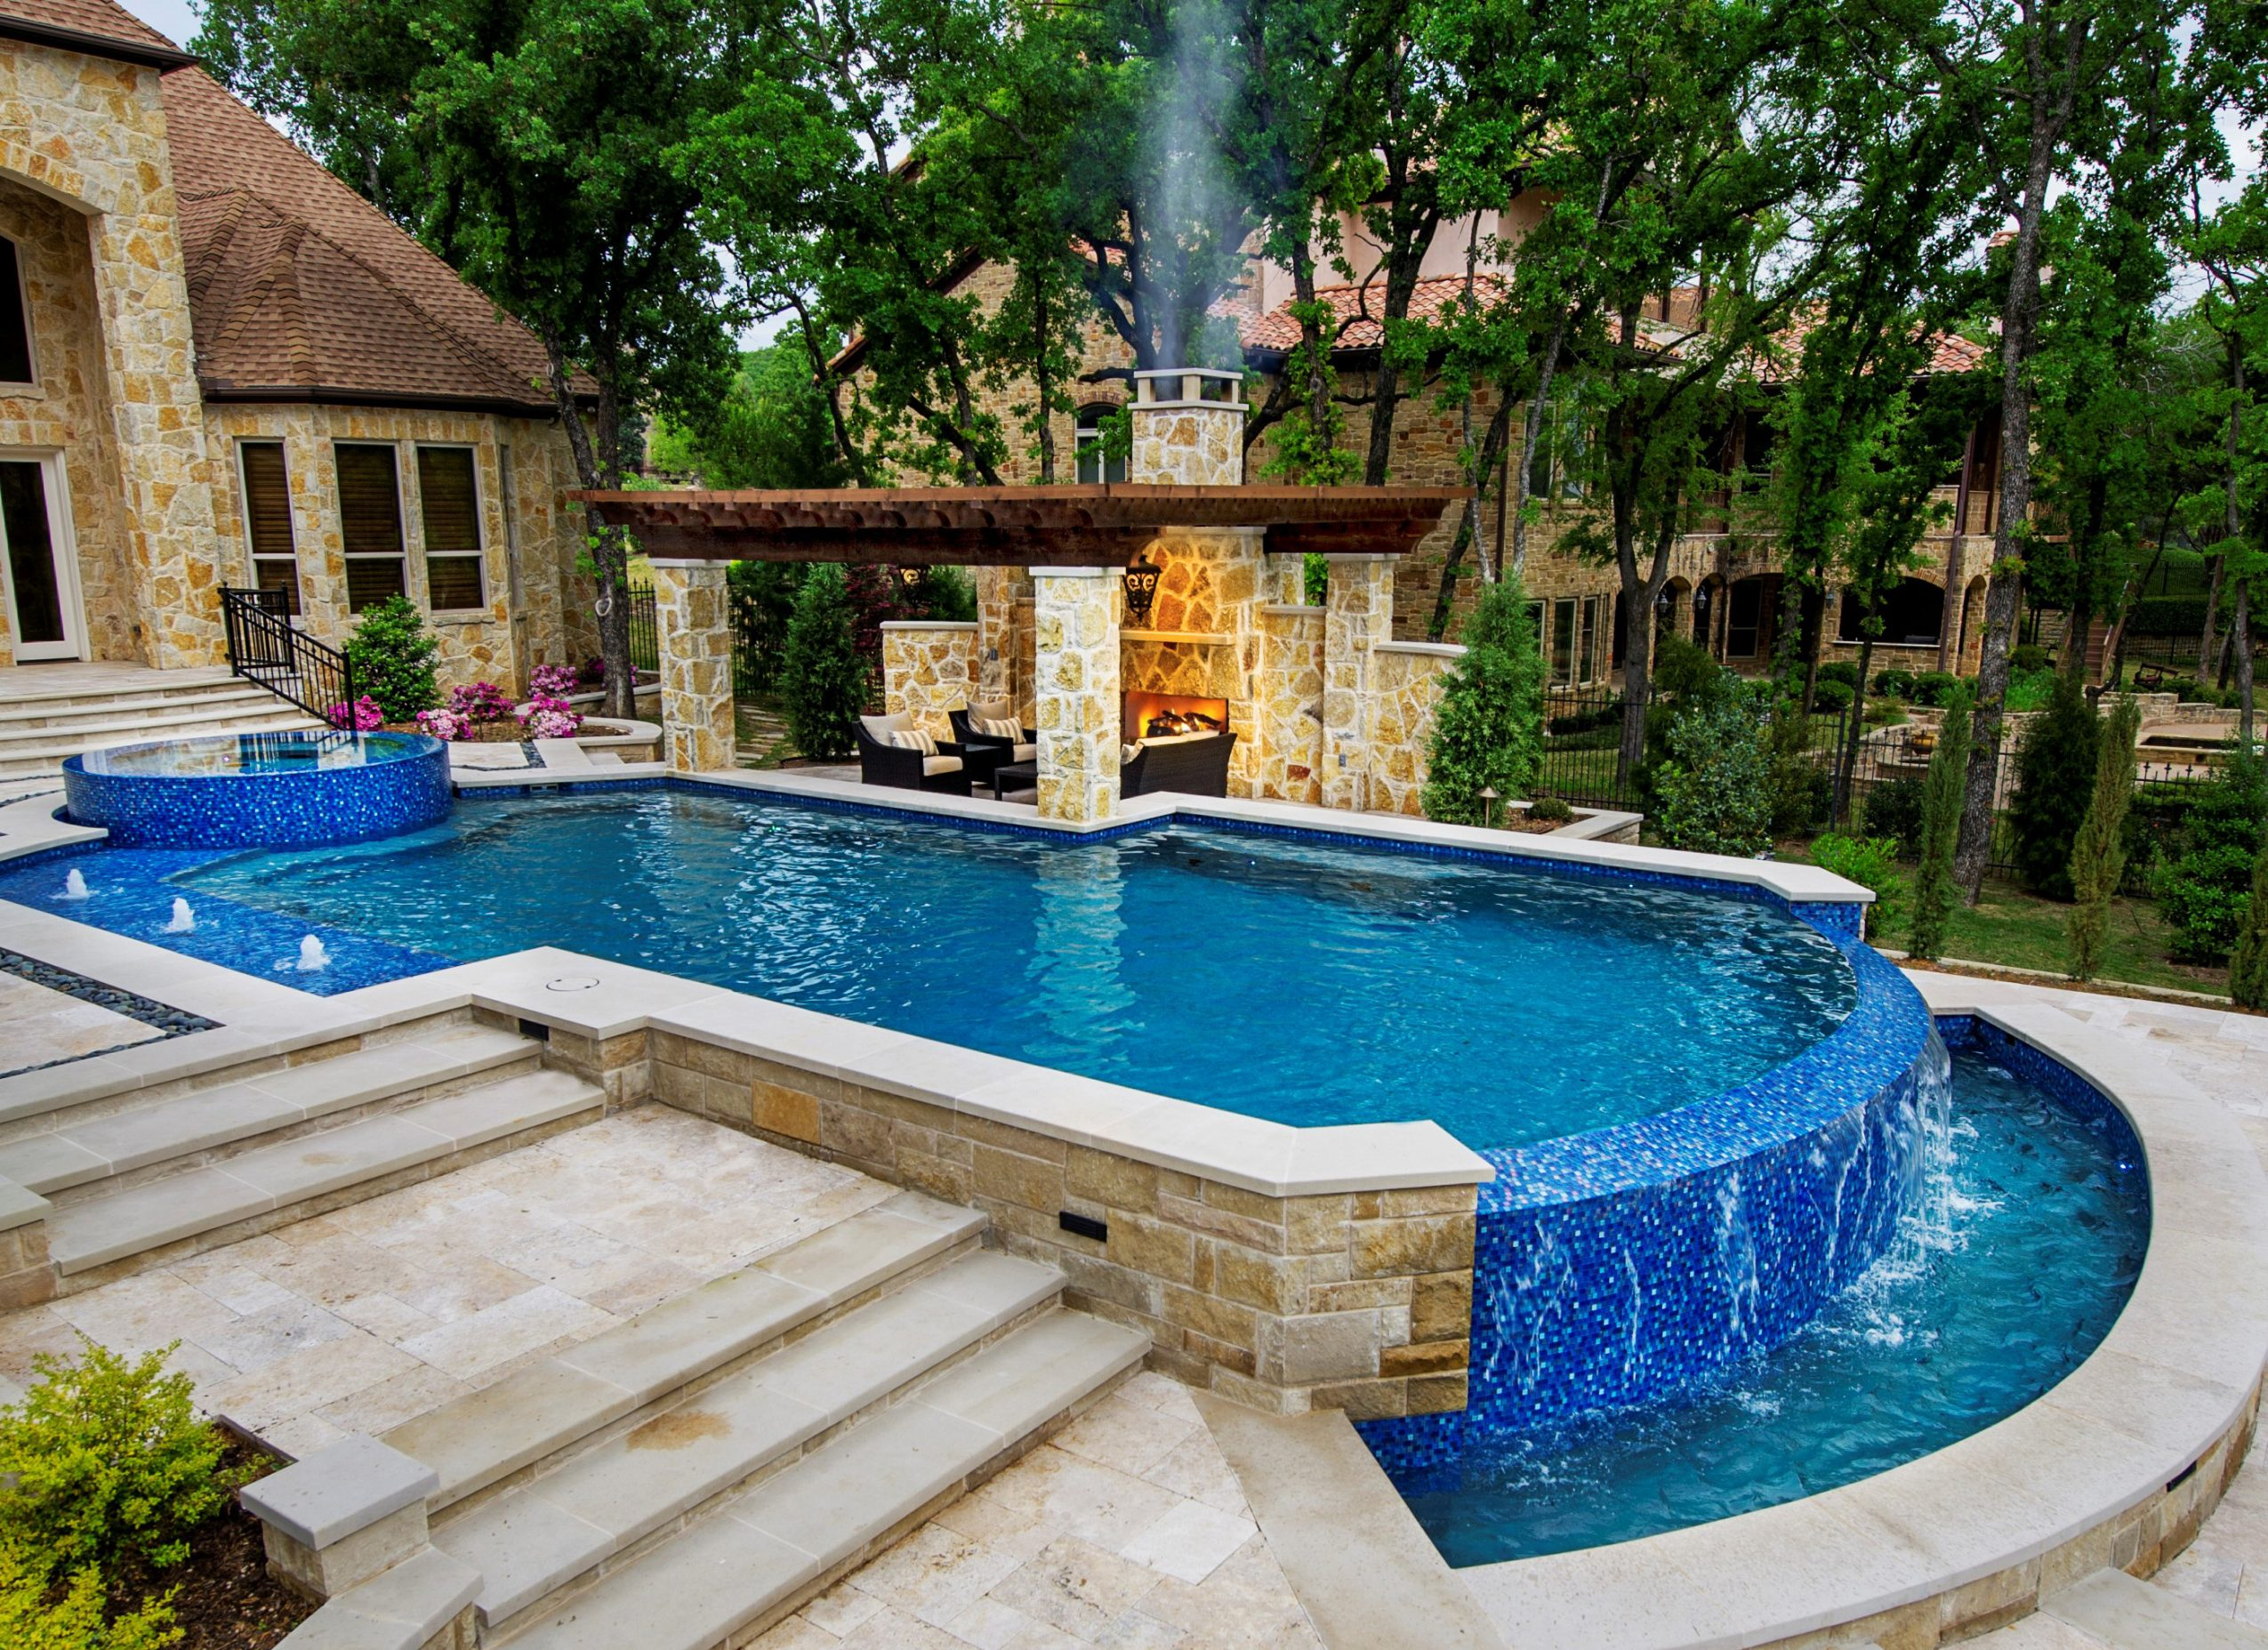 Meet debra smith of pulliam pools in fort worth voyage dallas magazine dallas city guide for City of fort worth public swimming pools